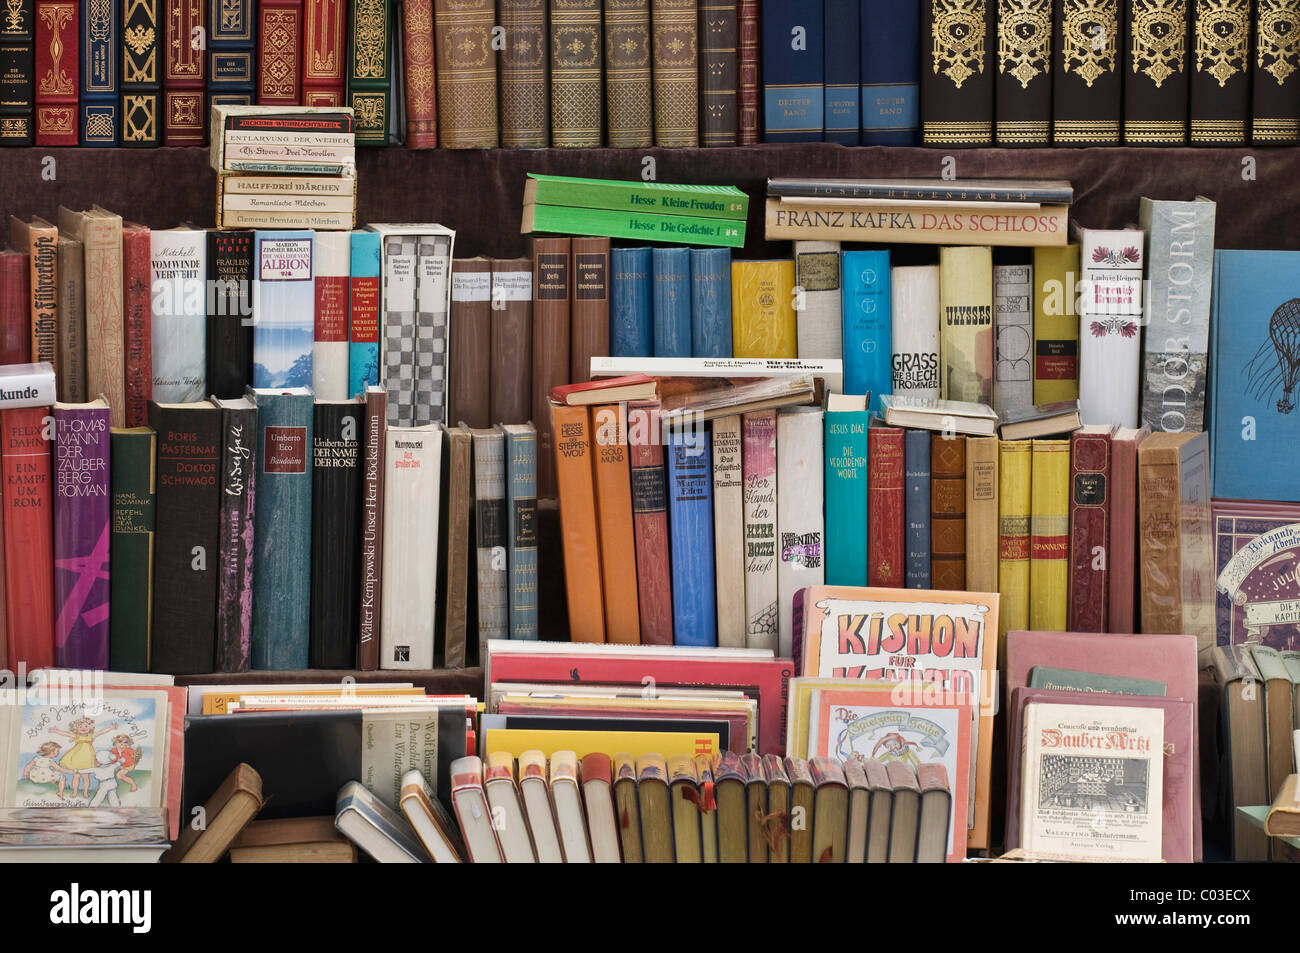 Books, display of bound books in a German antique book store - Stock Image